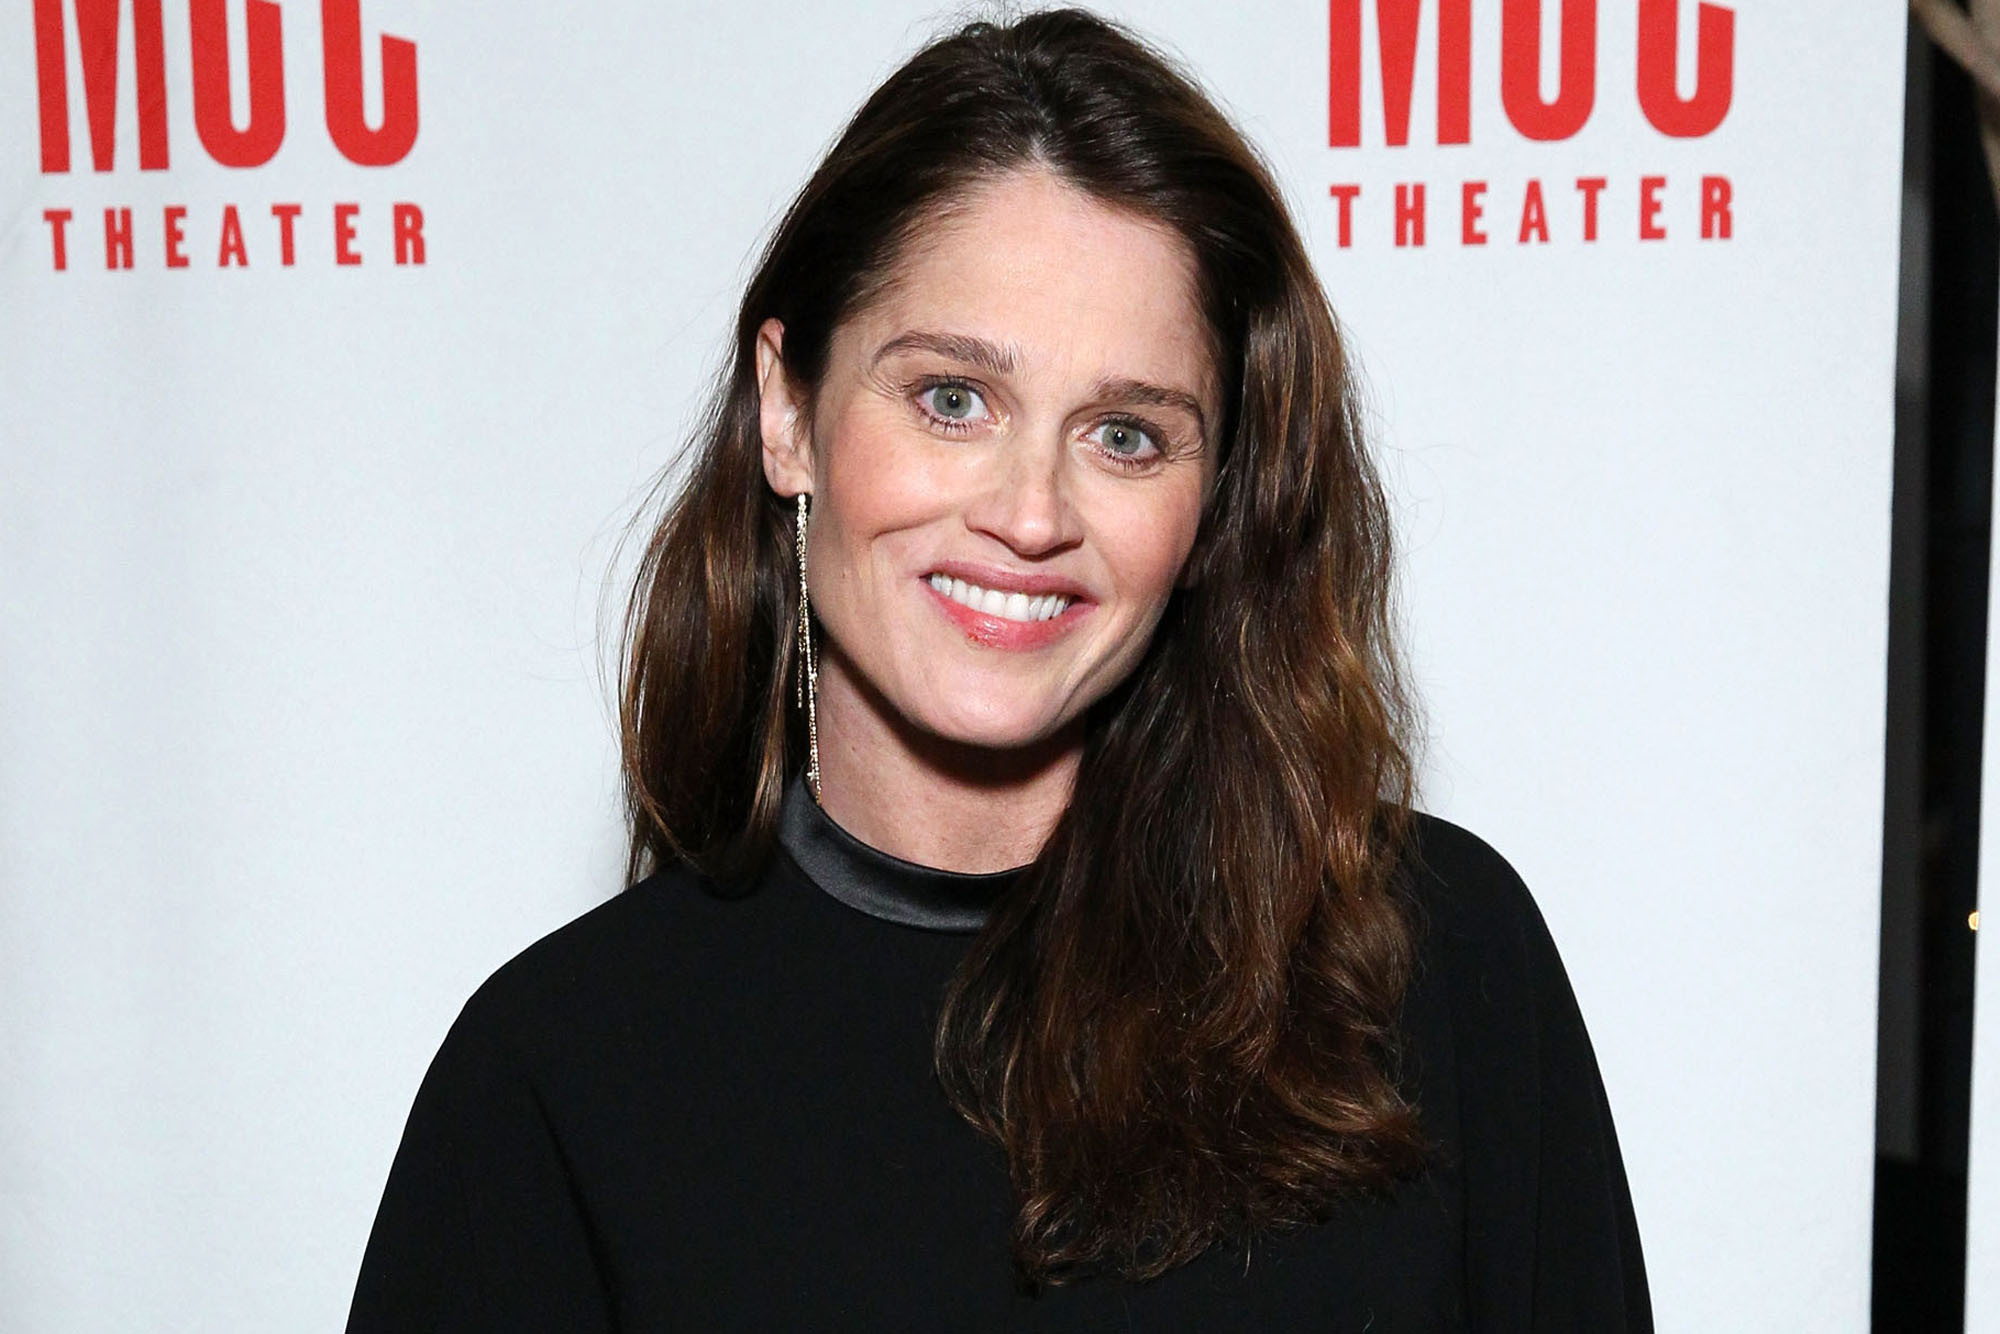 Top 10 Facts About Robin Tunney You Didn't Know Before